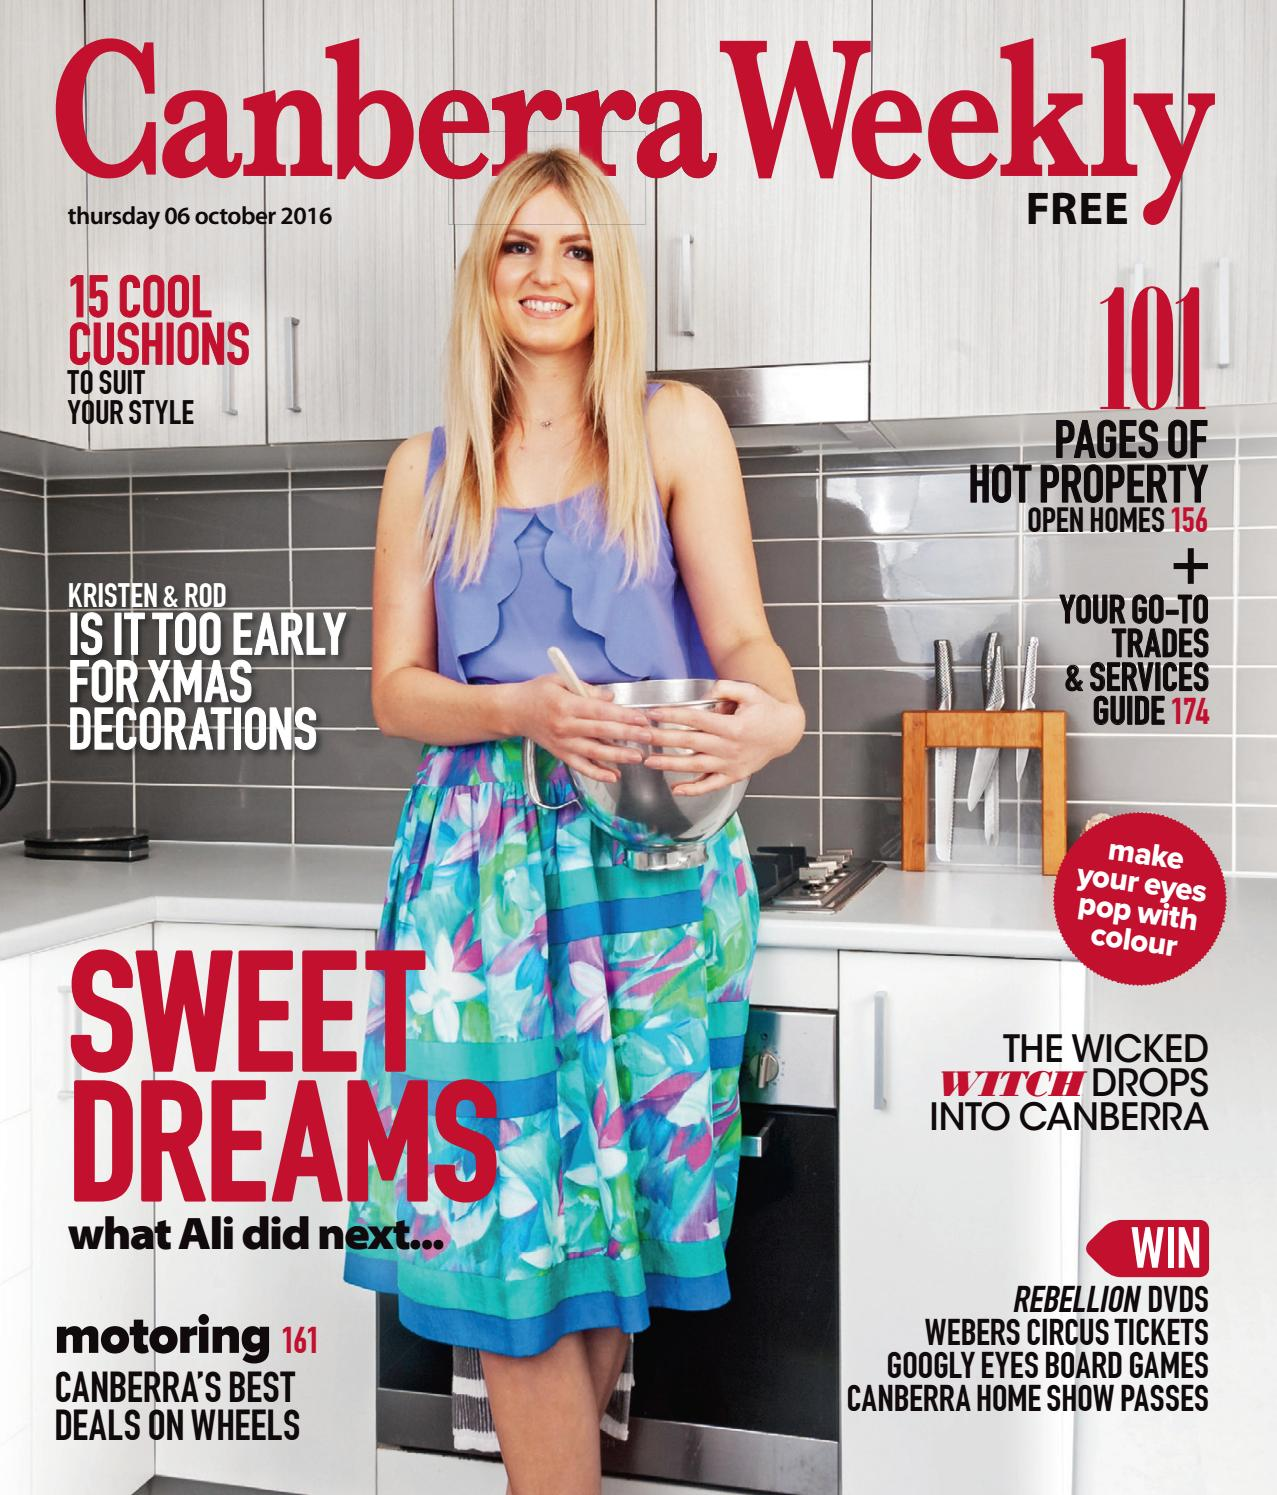 06 October 2016 by Canberra Weekly Magazine - issuu 0b3673d13